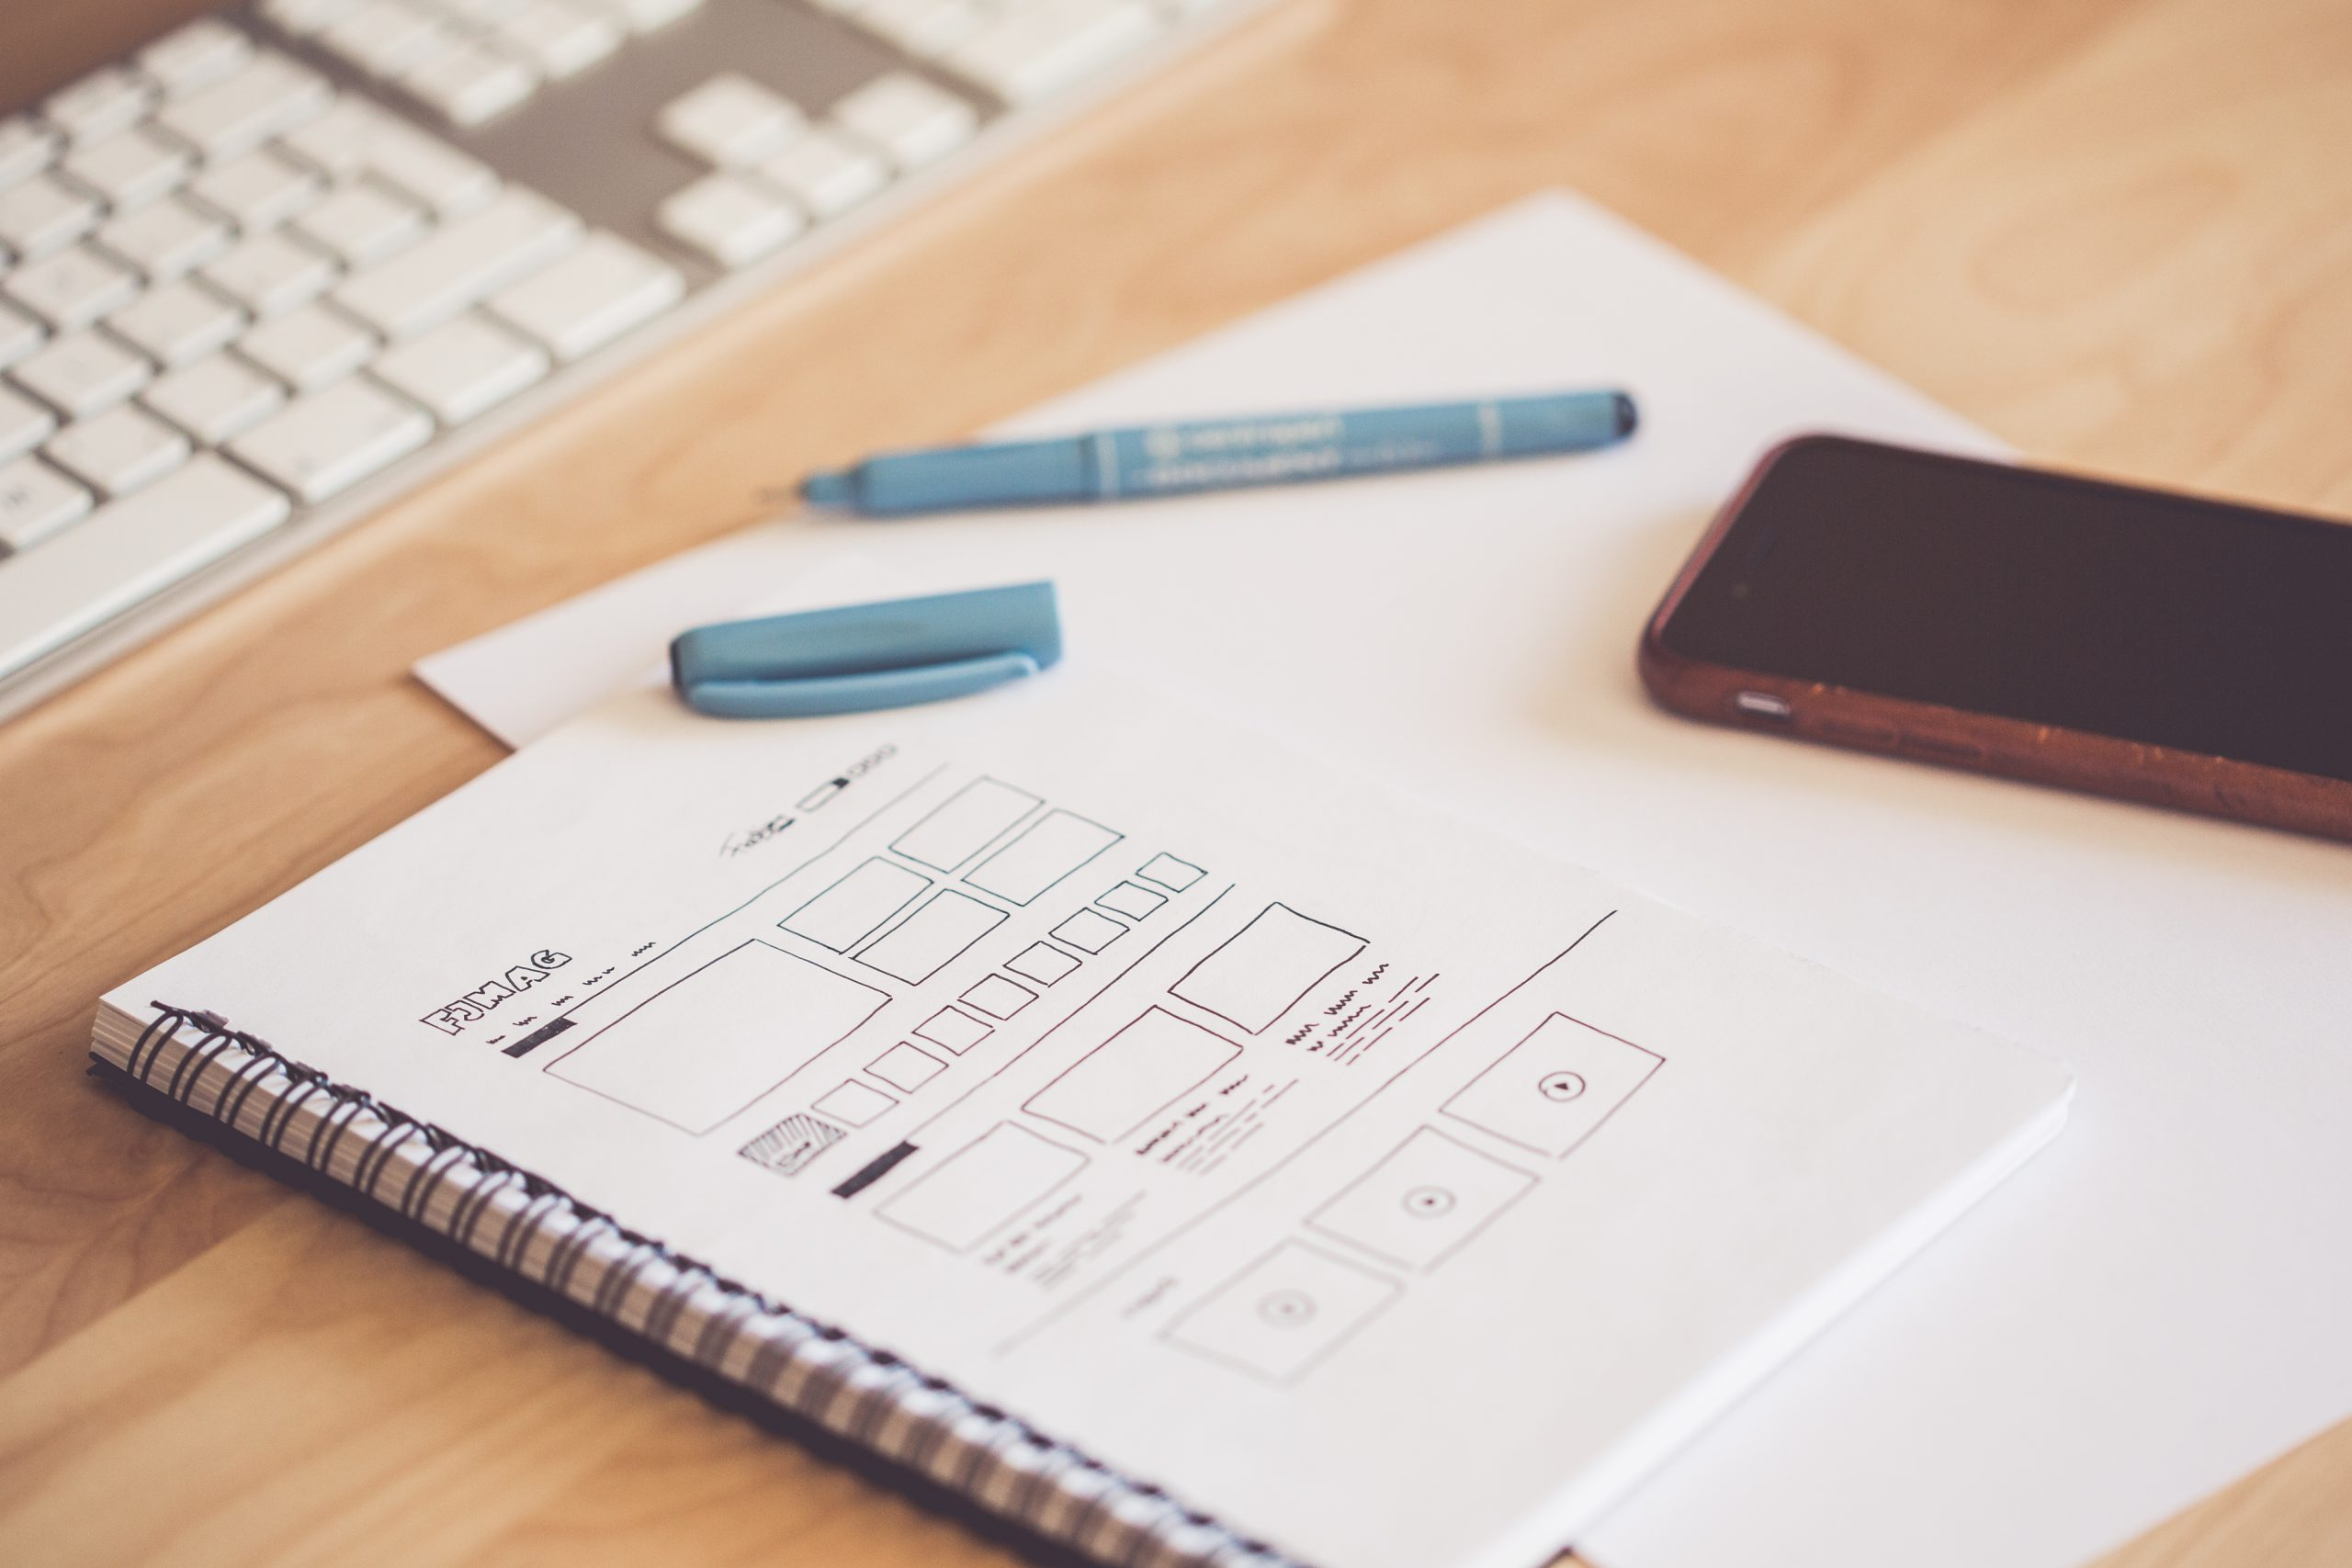 What to Look For in a Local Web Designer